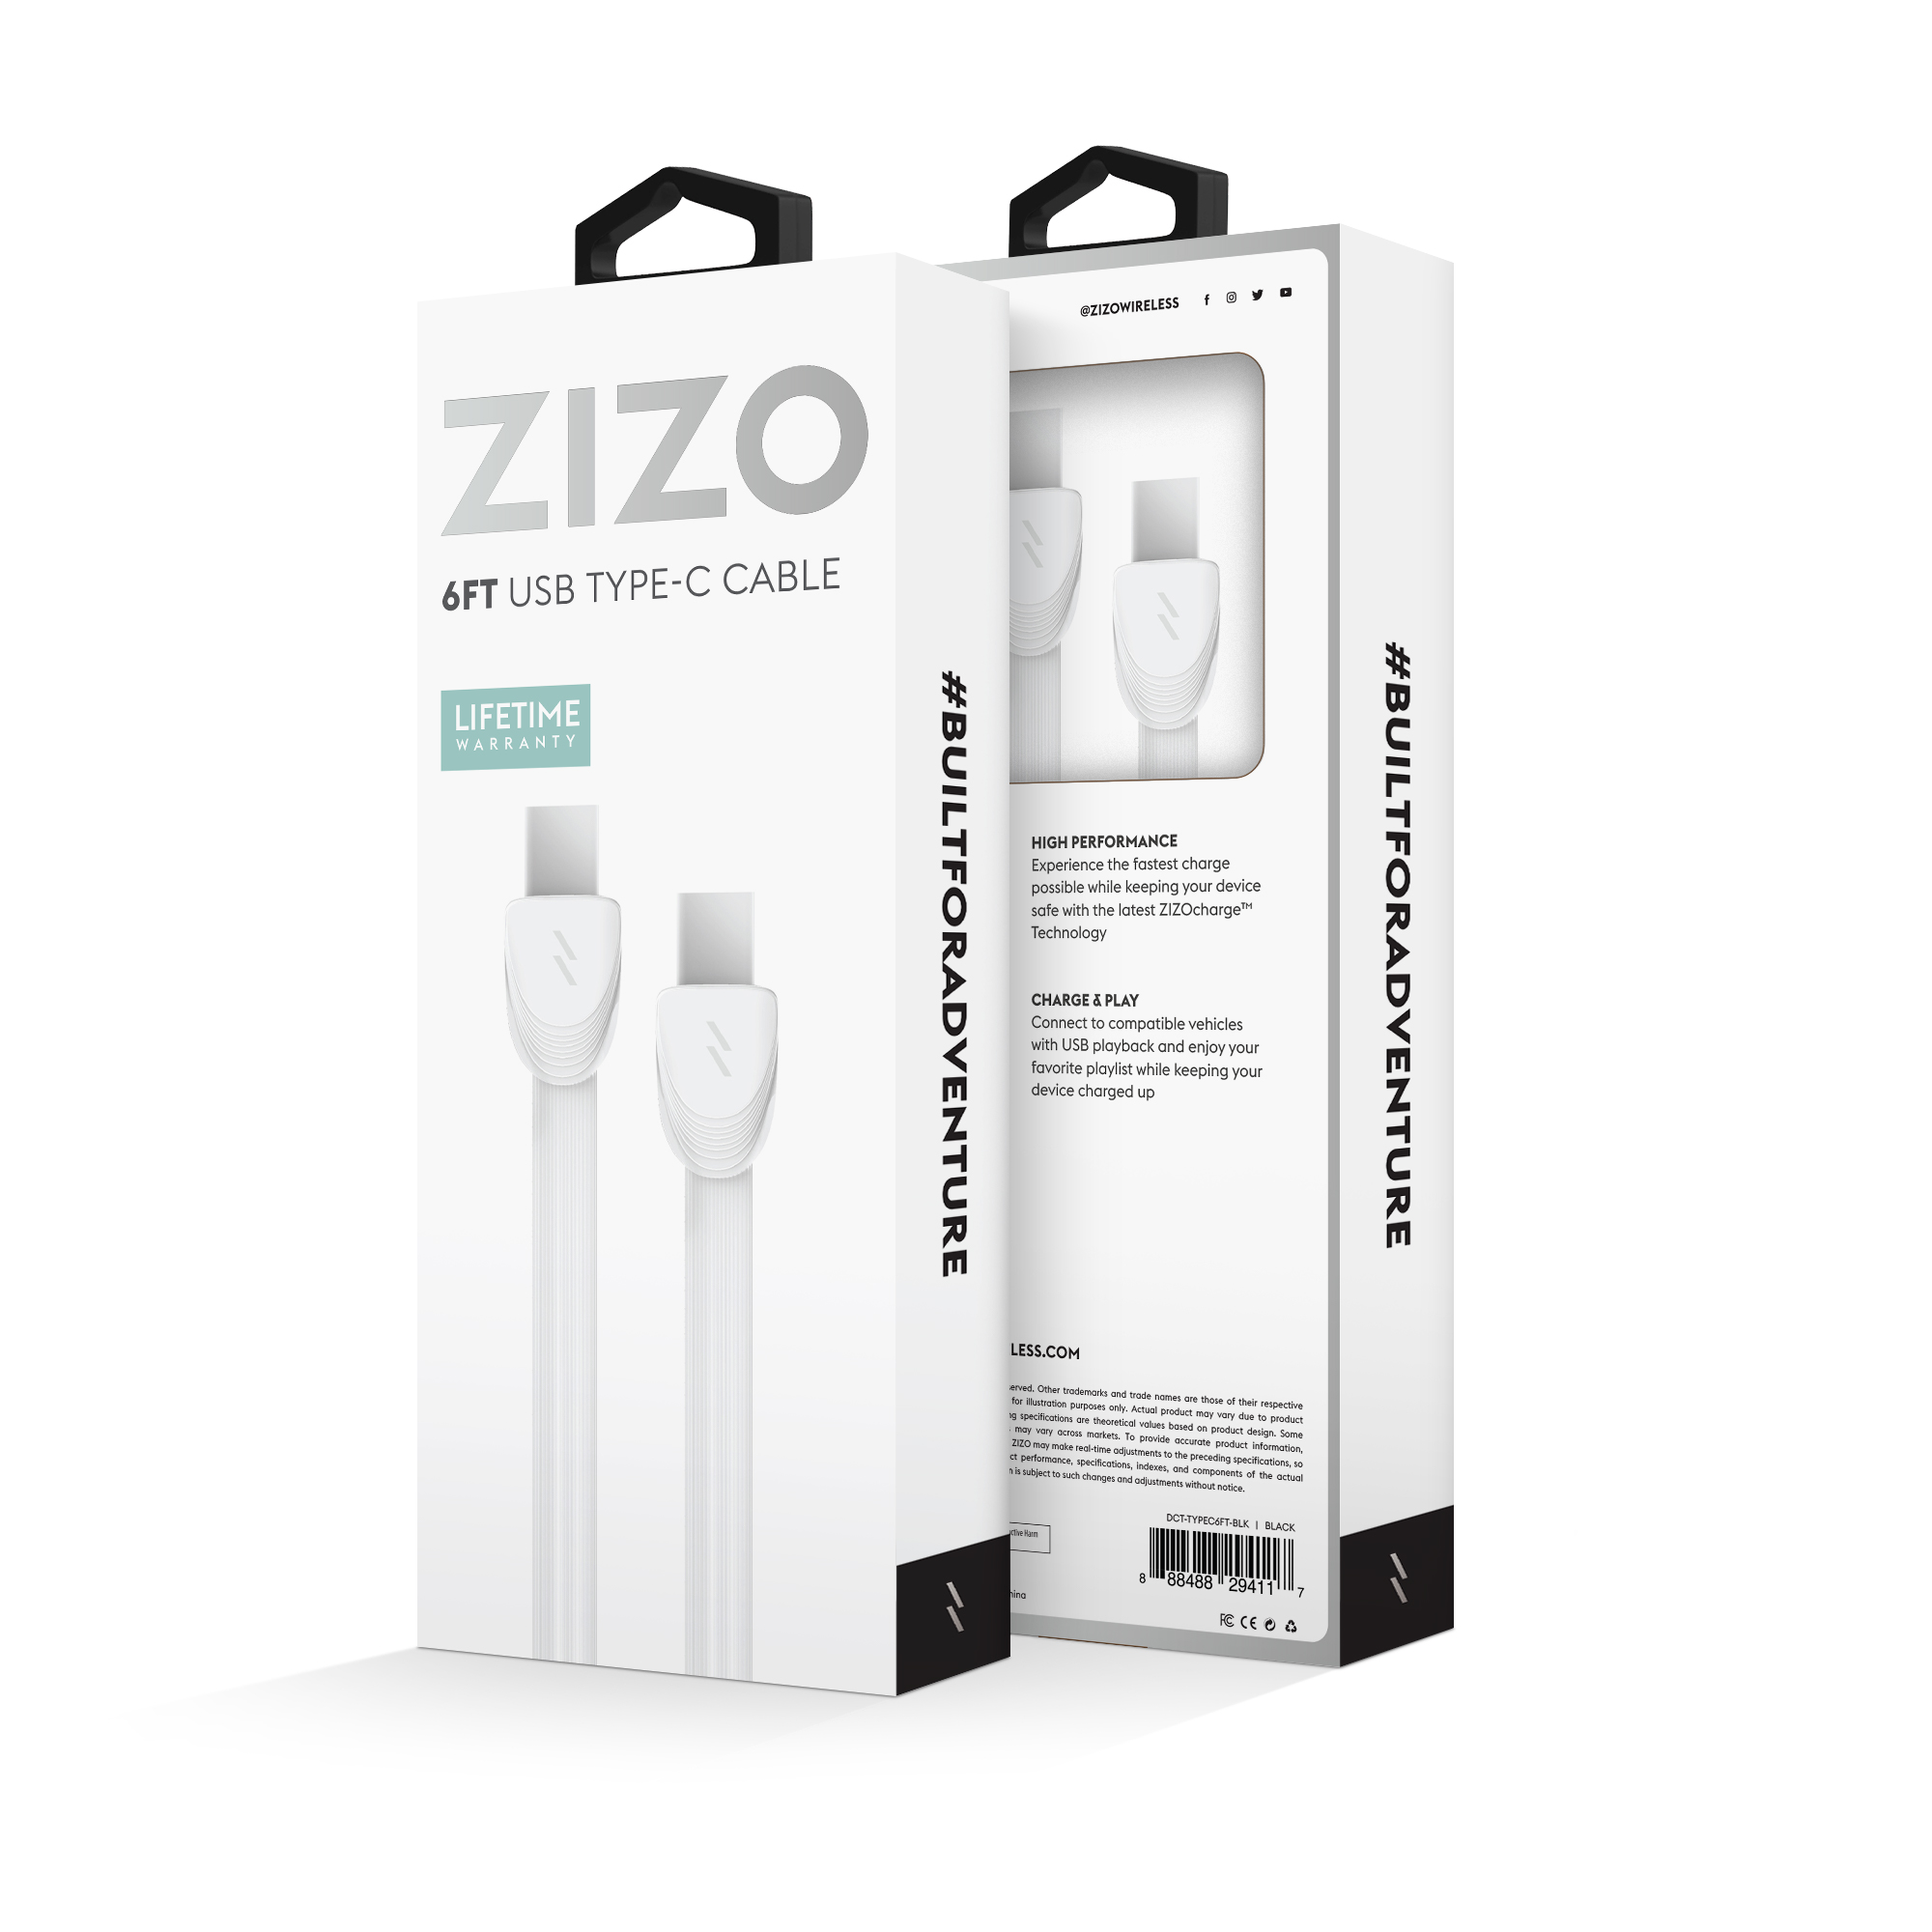 WHITE USB TYPE C CABLE 6 FEET